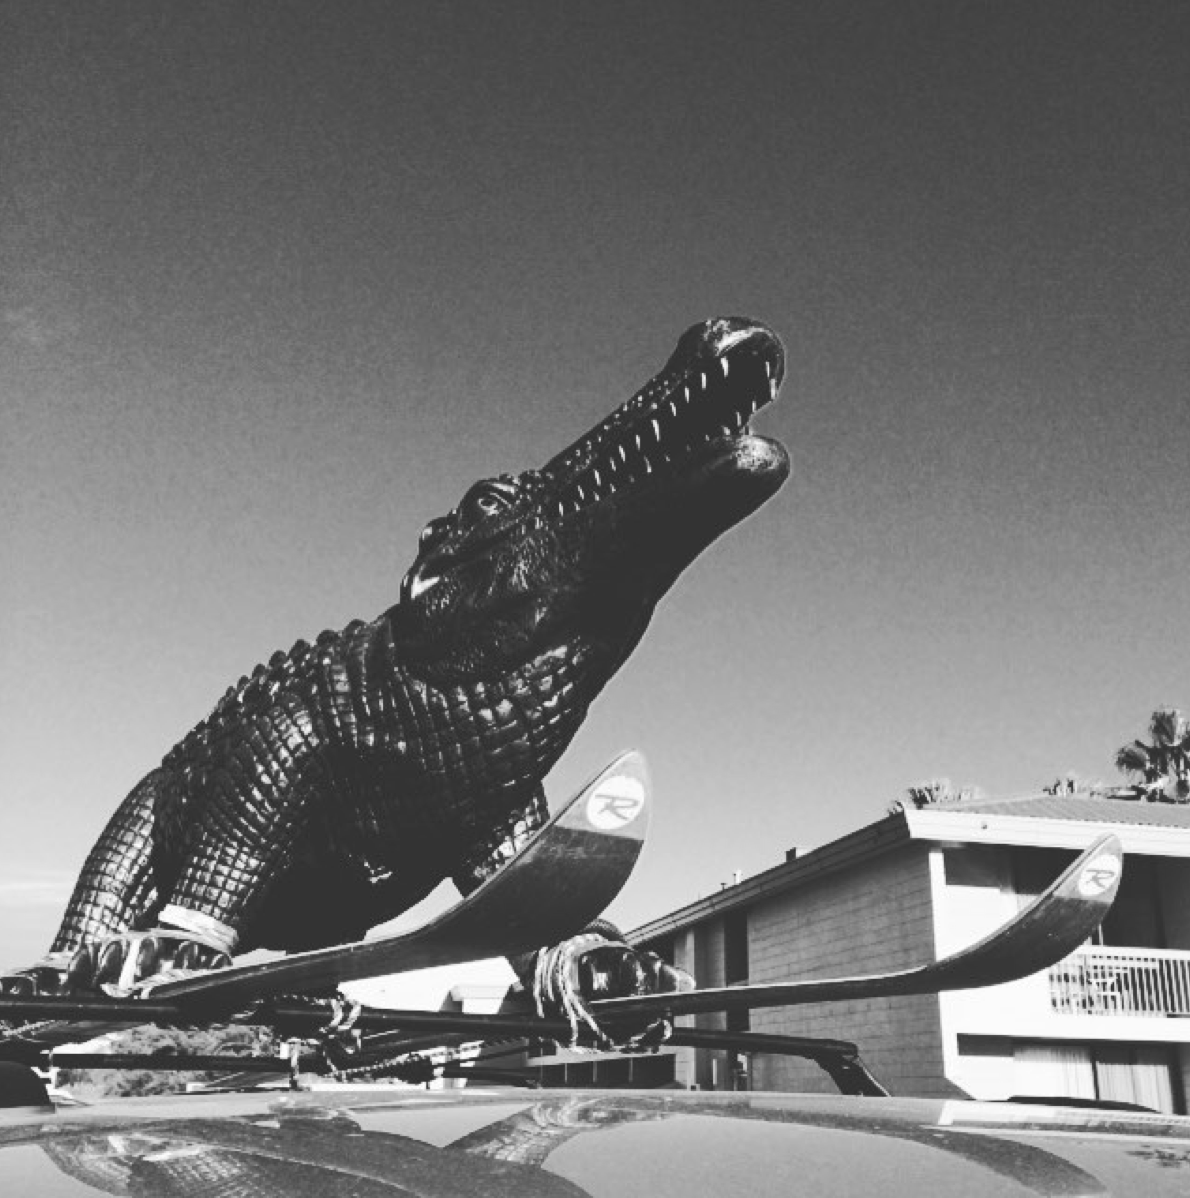 This croc surely has made us the most photographed vehicle on the Stuart Highway in 2016